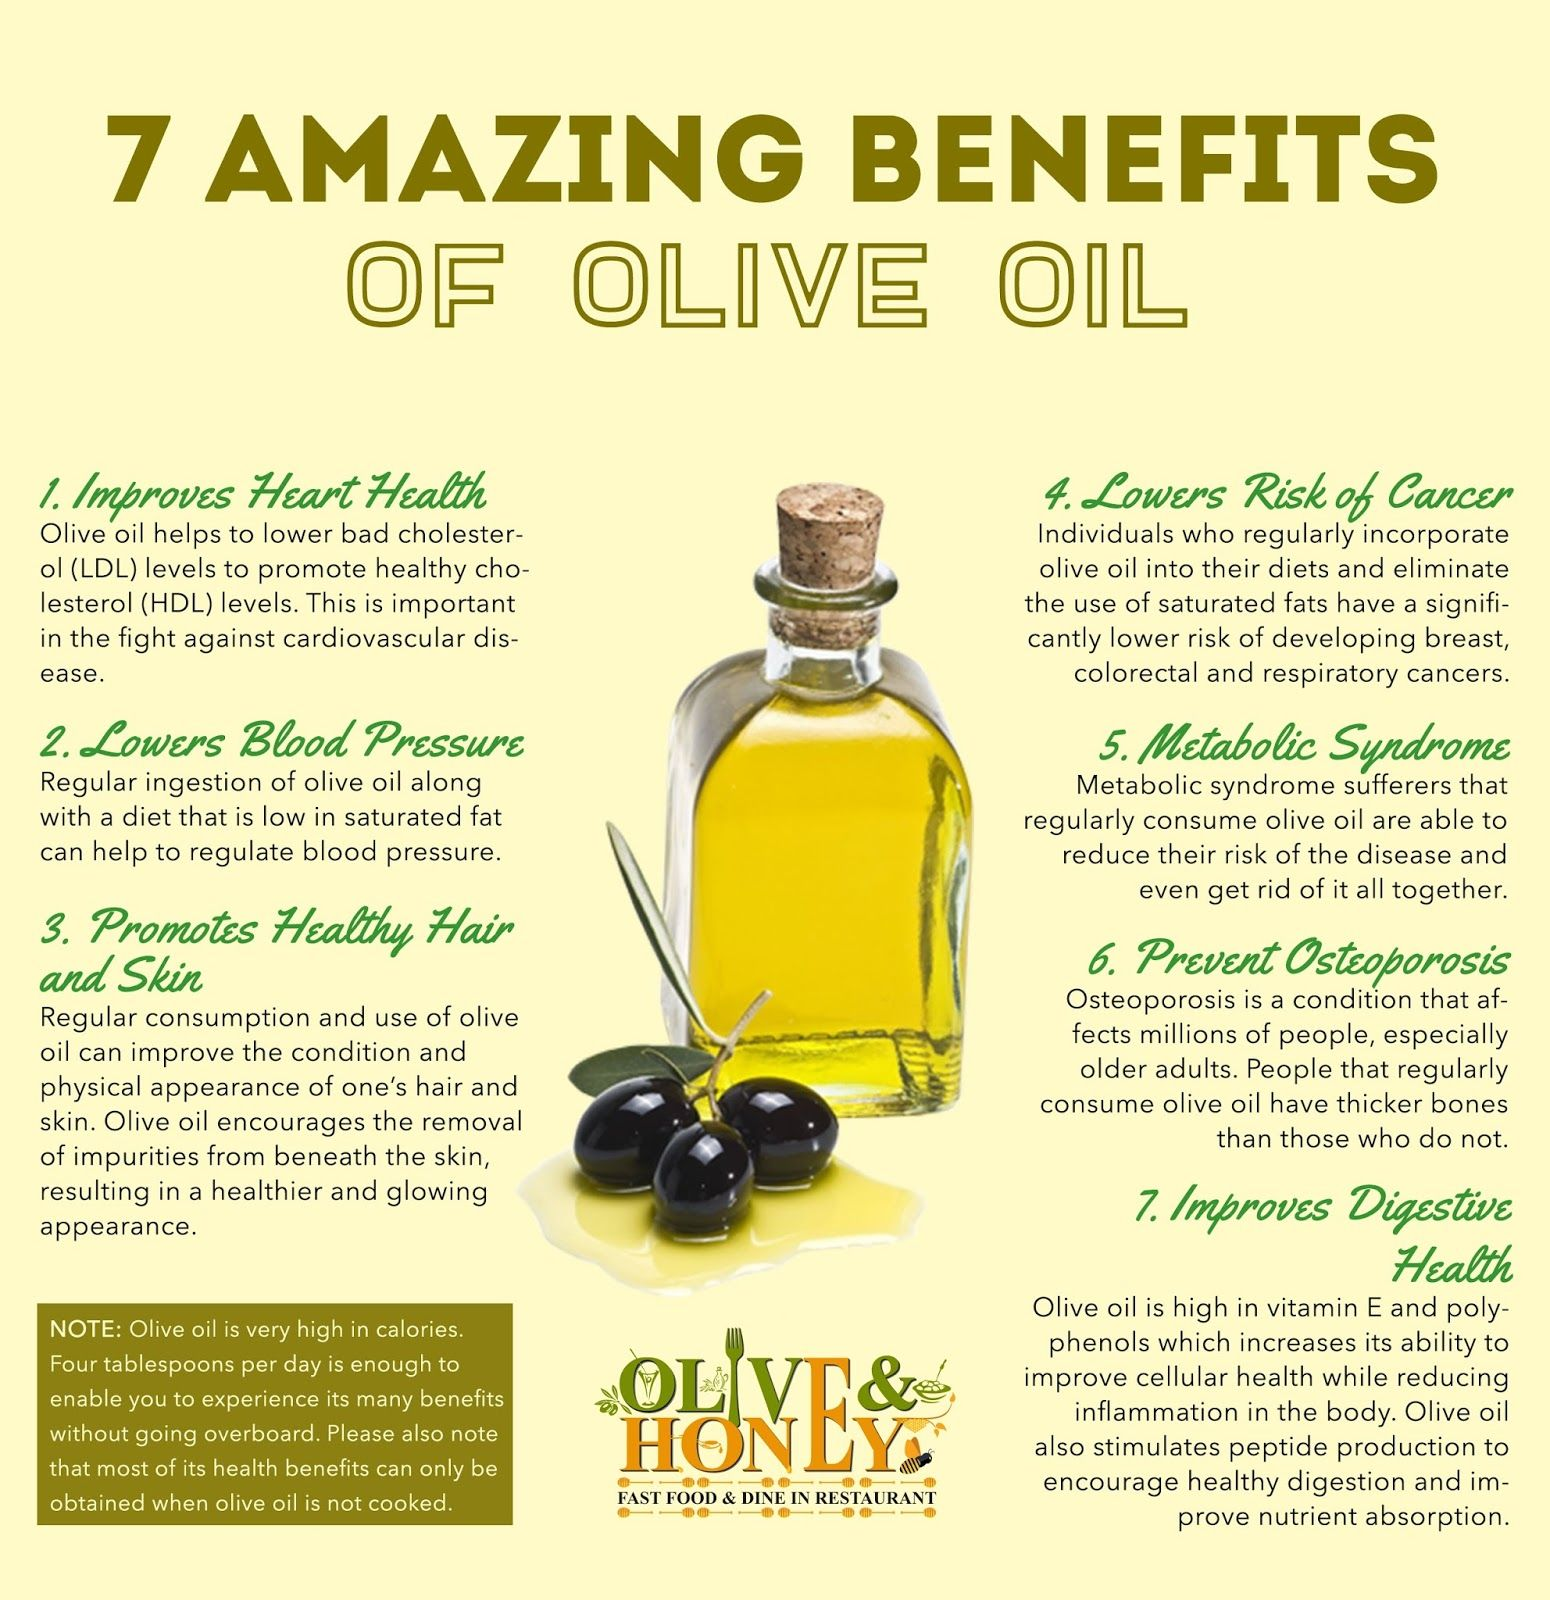 7 amazing benefits of olive oil - this infographic / image